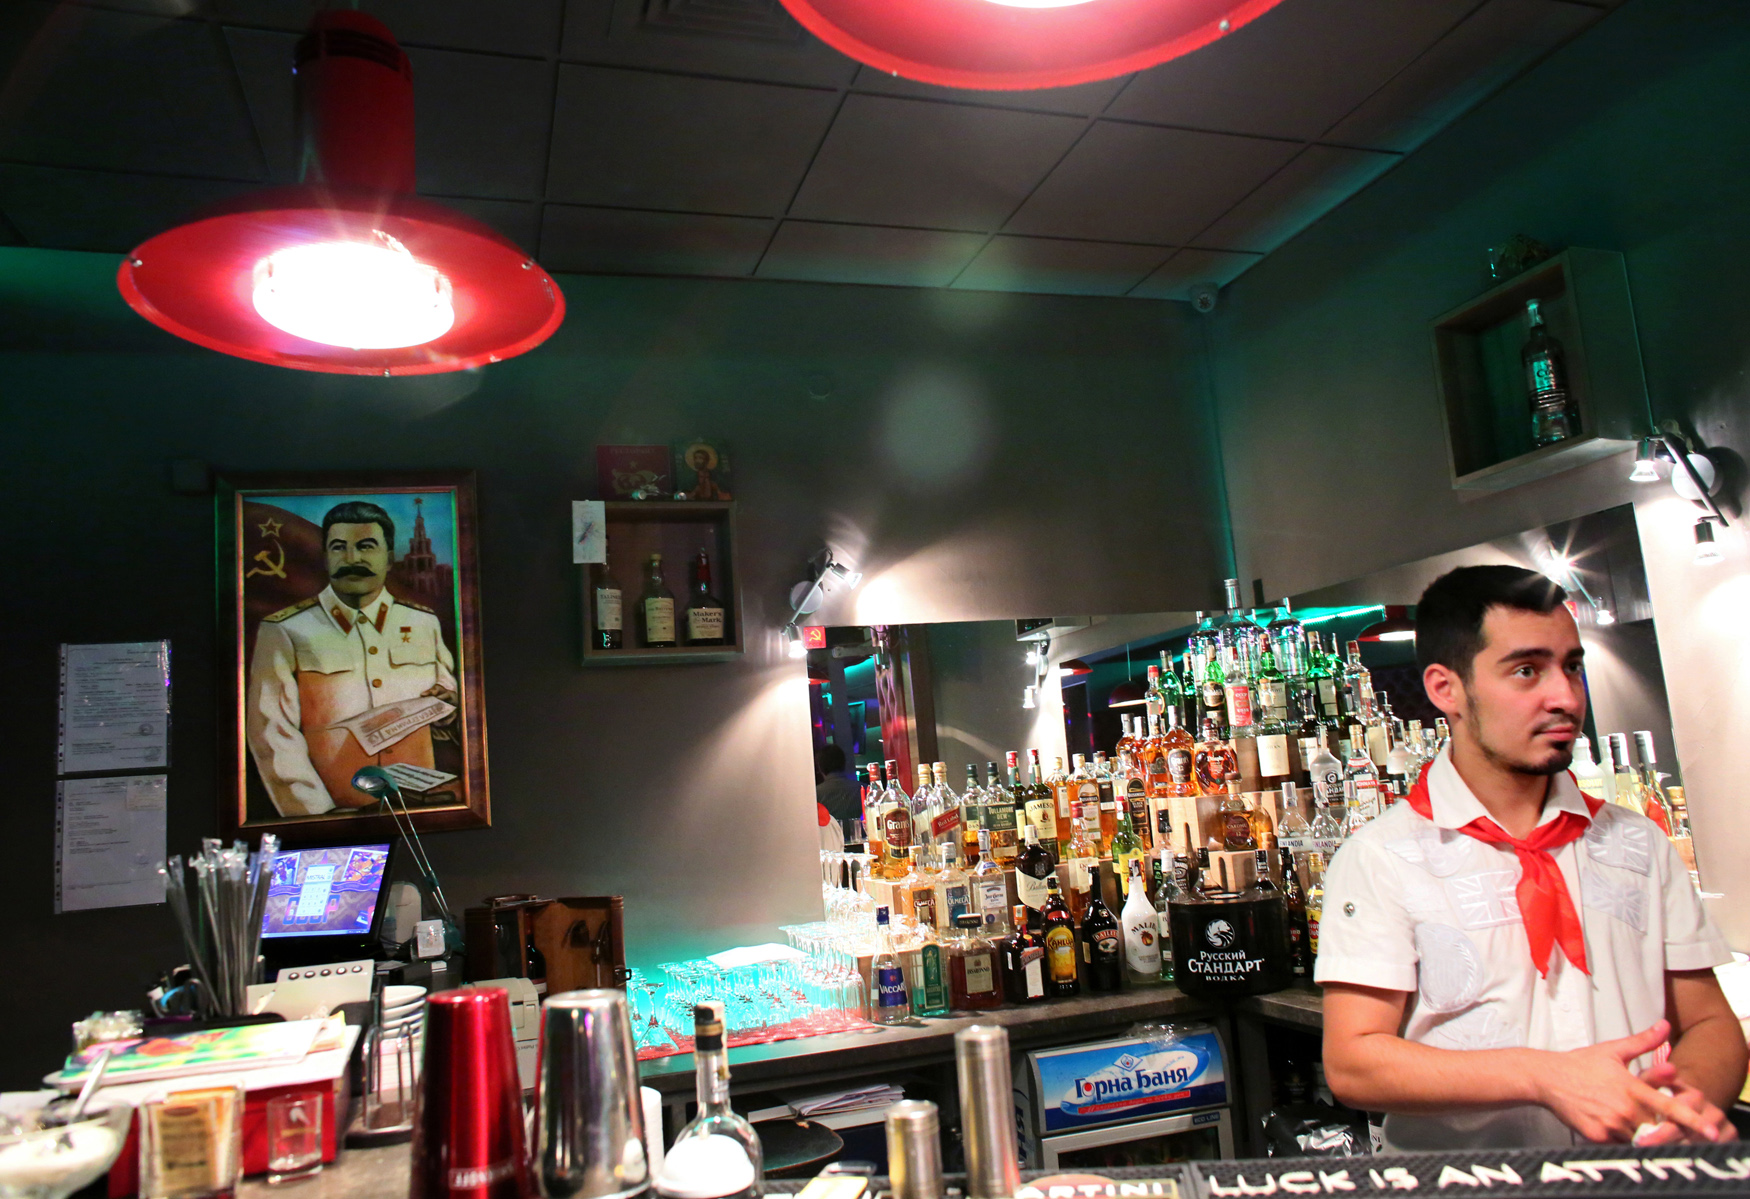 Kristiyan Stamatov serves drinks at SSSR, a USSR nostalgia restaurant and bar in Bulgaria's capital Sofia, in front of a portrait of Soviet communist leader Joseph Stalin, on October 4th, 2014. Stamatov is wearing a red tie, symbolic of what was once called a {quote}pionerche{quote} (pioneer,) or a Bulgarian student expected to serve the country and Communist party.